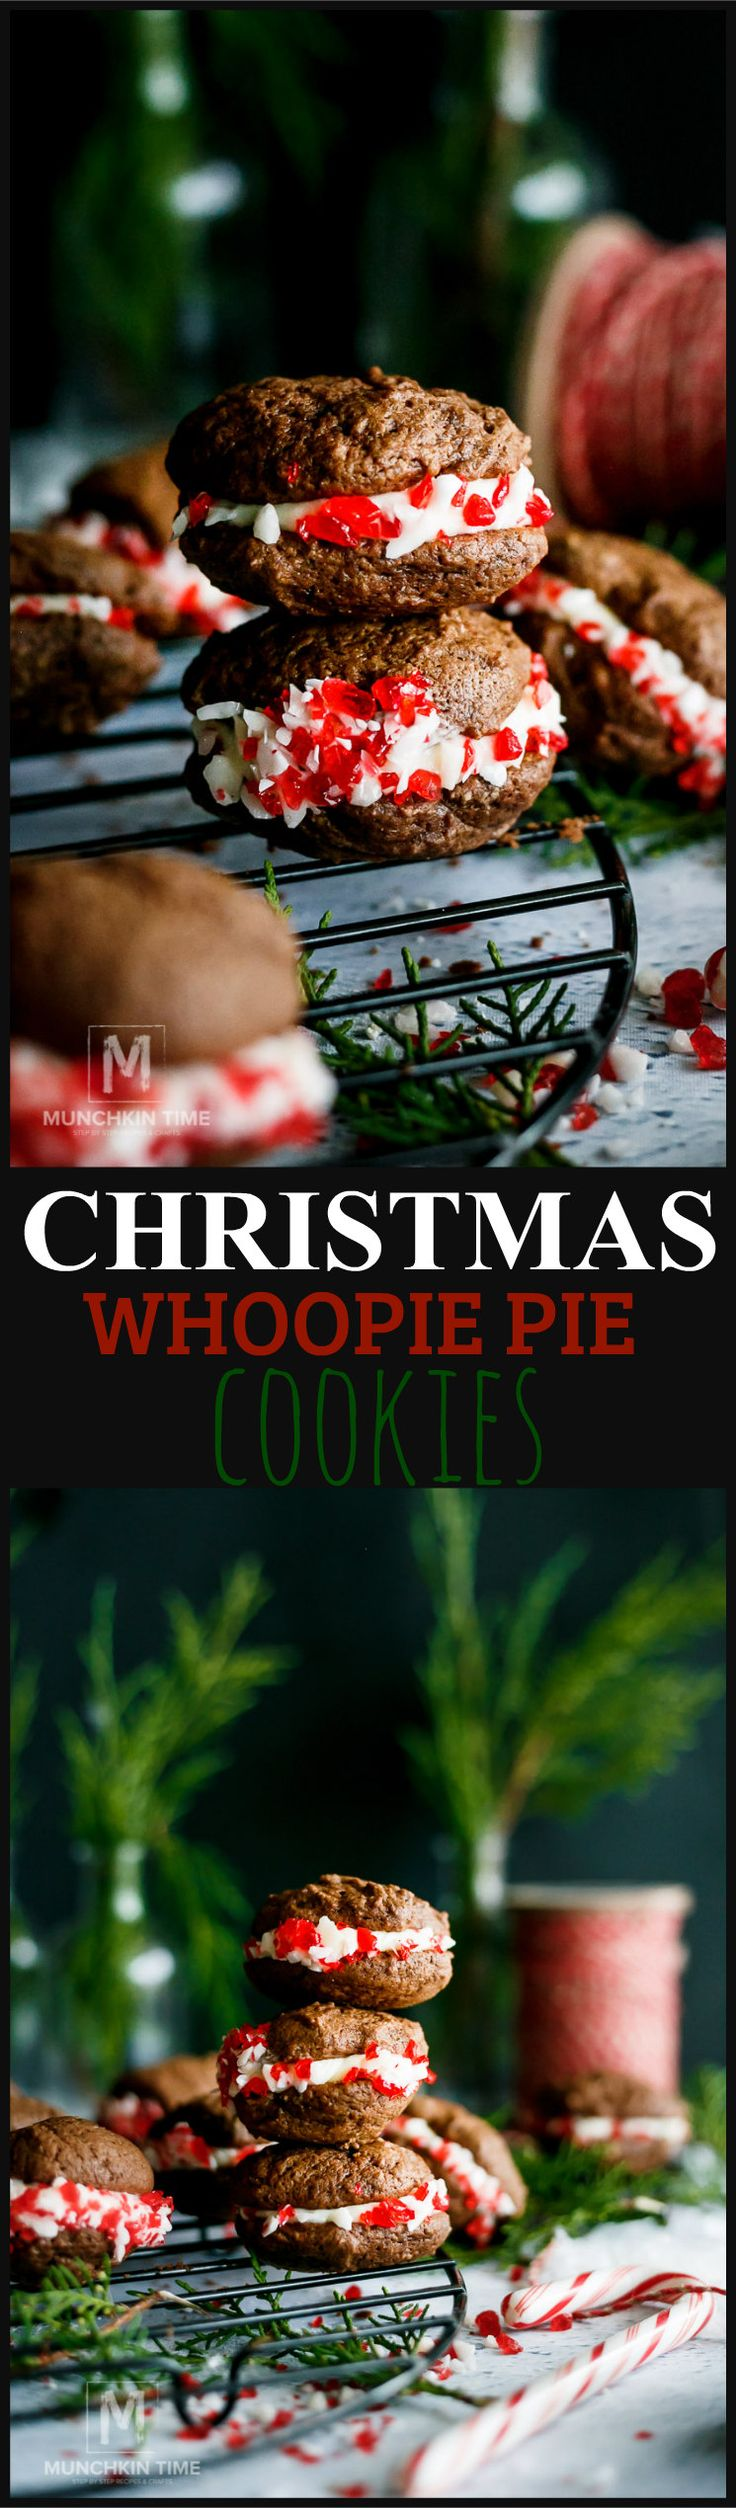 CHRISTMAS Cookies WHOOPIE PIE Cookie Recipe - YOUR friends & family won't be able to resist these soft & sweet Christmas cookies They are made of 2 soft & fluffy chocolate cookies, filled with cream cheese filling and dipped in candy canes pieces. They are so scrumptious!!!